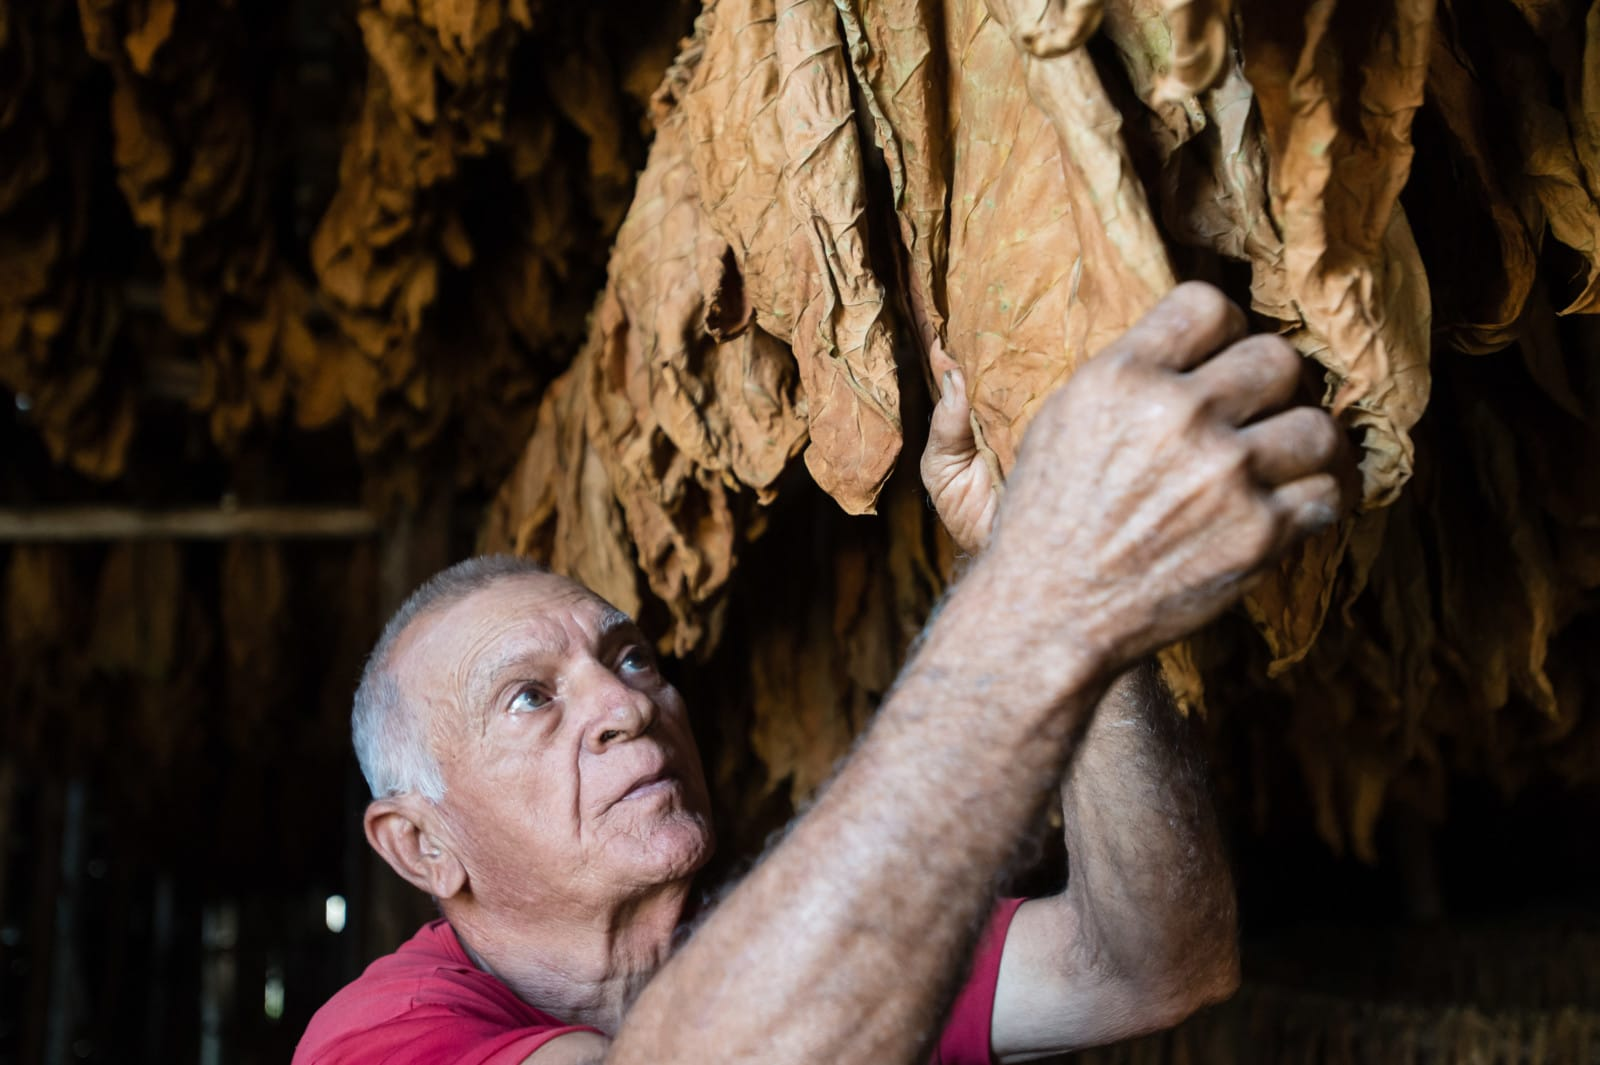 tobacco-vinales-cuba-london-freelance-photographer-richard-isaac-3200